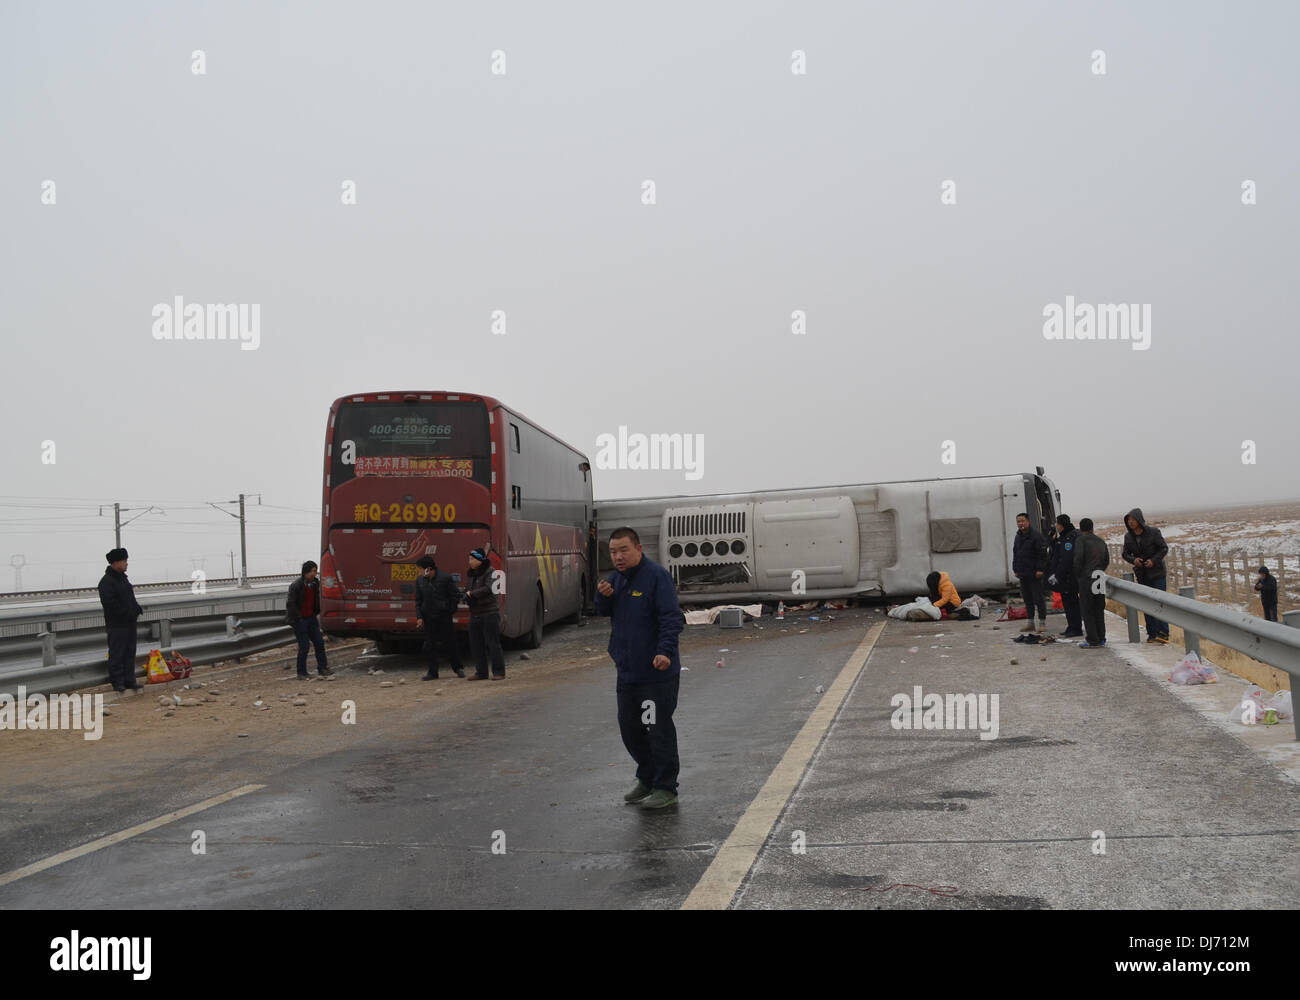 Gansu, China   23rd Nov, 2013  The site of a road accident